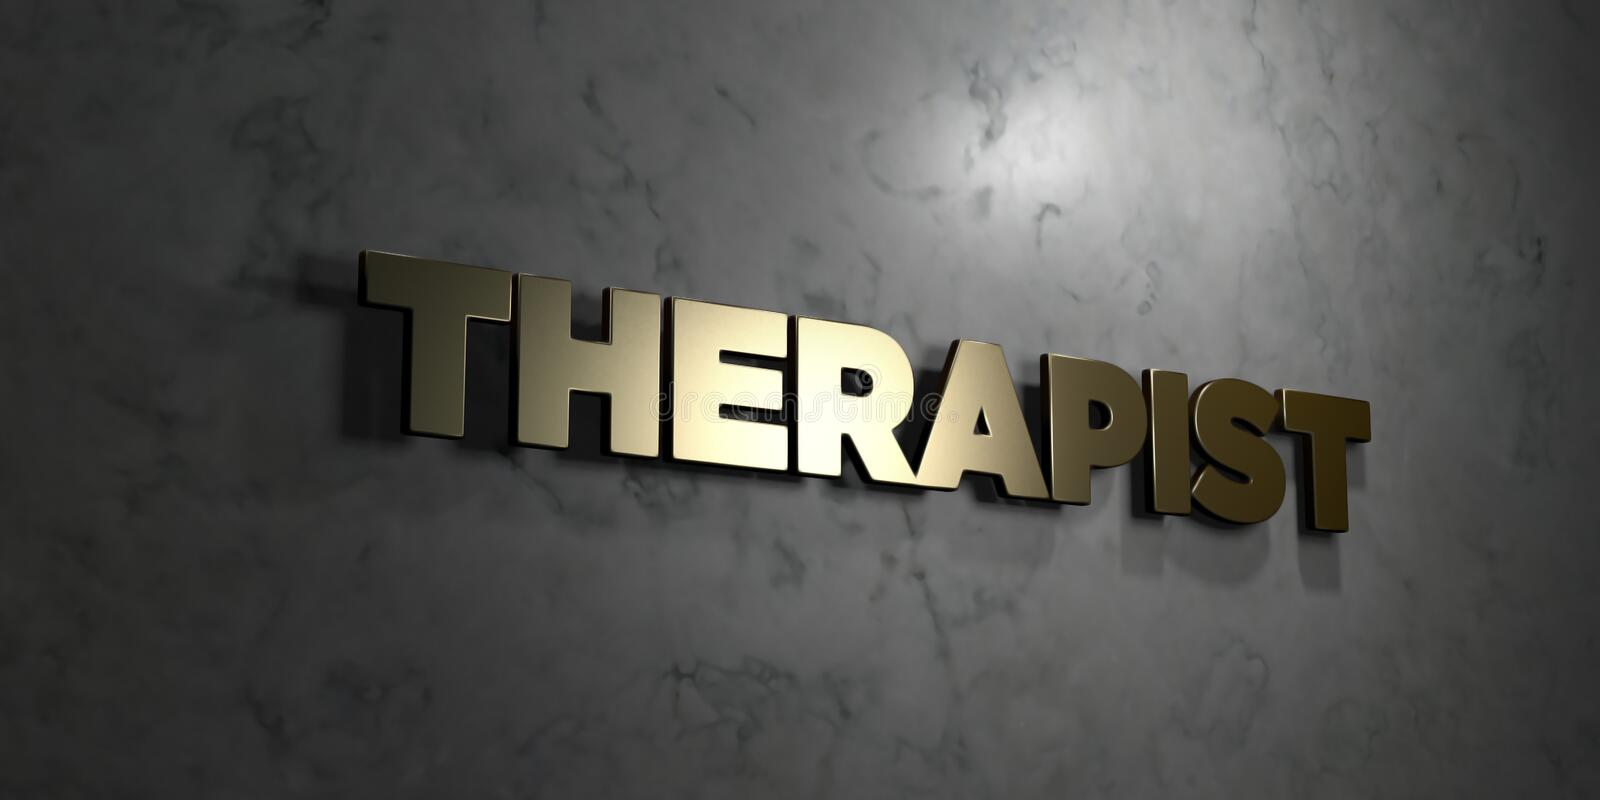 Therapist - Gold text on black background - 3D rendered royalty free stock picture. This image can be used for an online website banner ad or a print postcard stock illustration